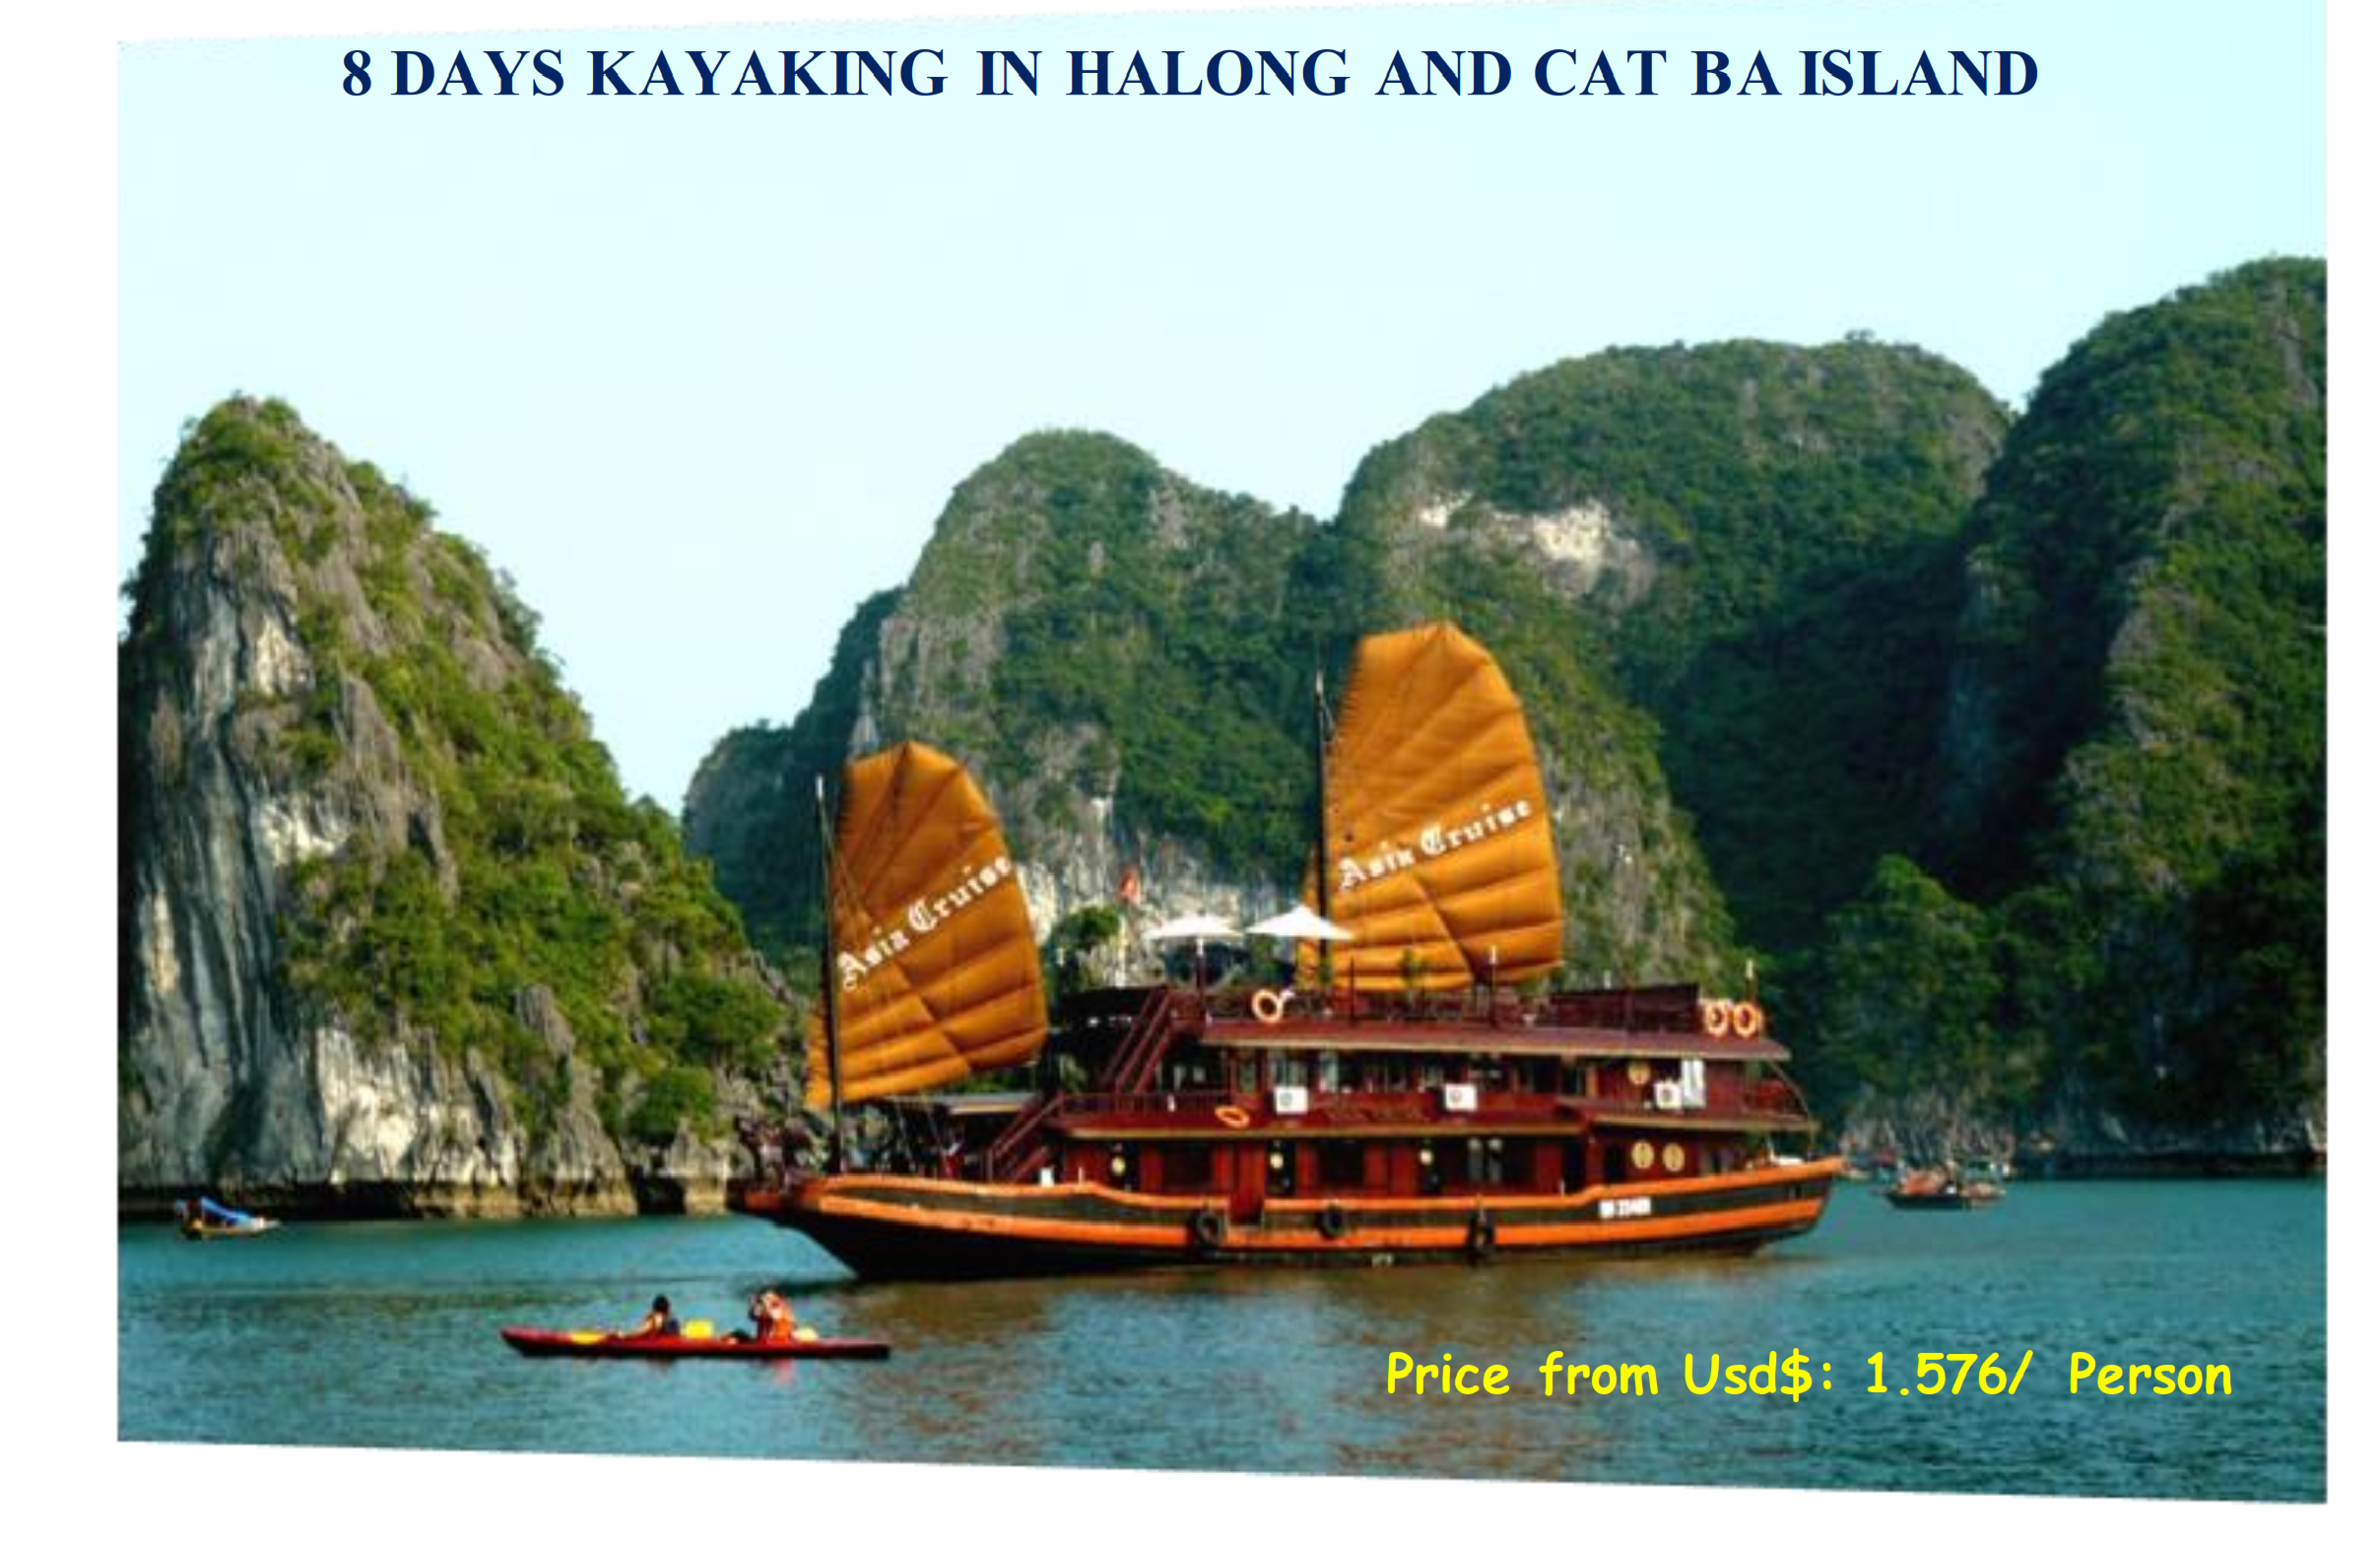 08 DAYS KAYAKING IN HALONG AND CAT BA ISLAND